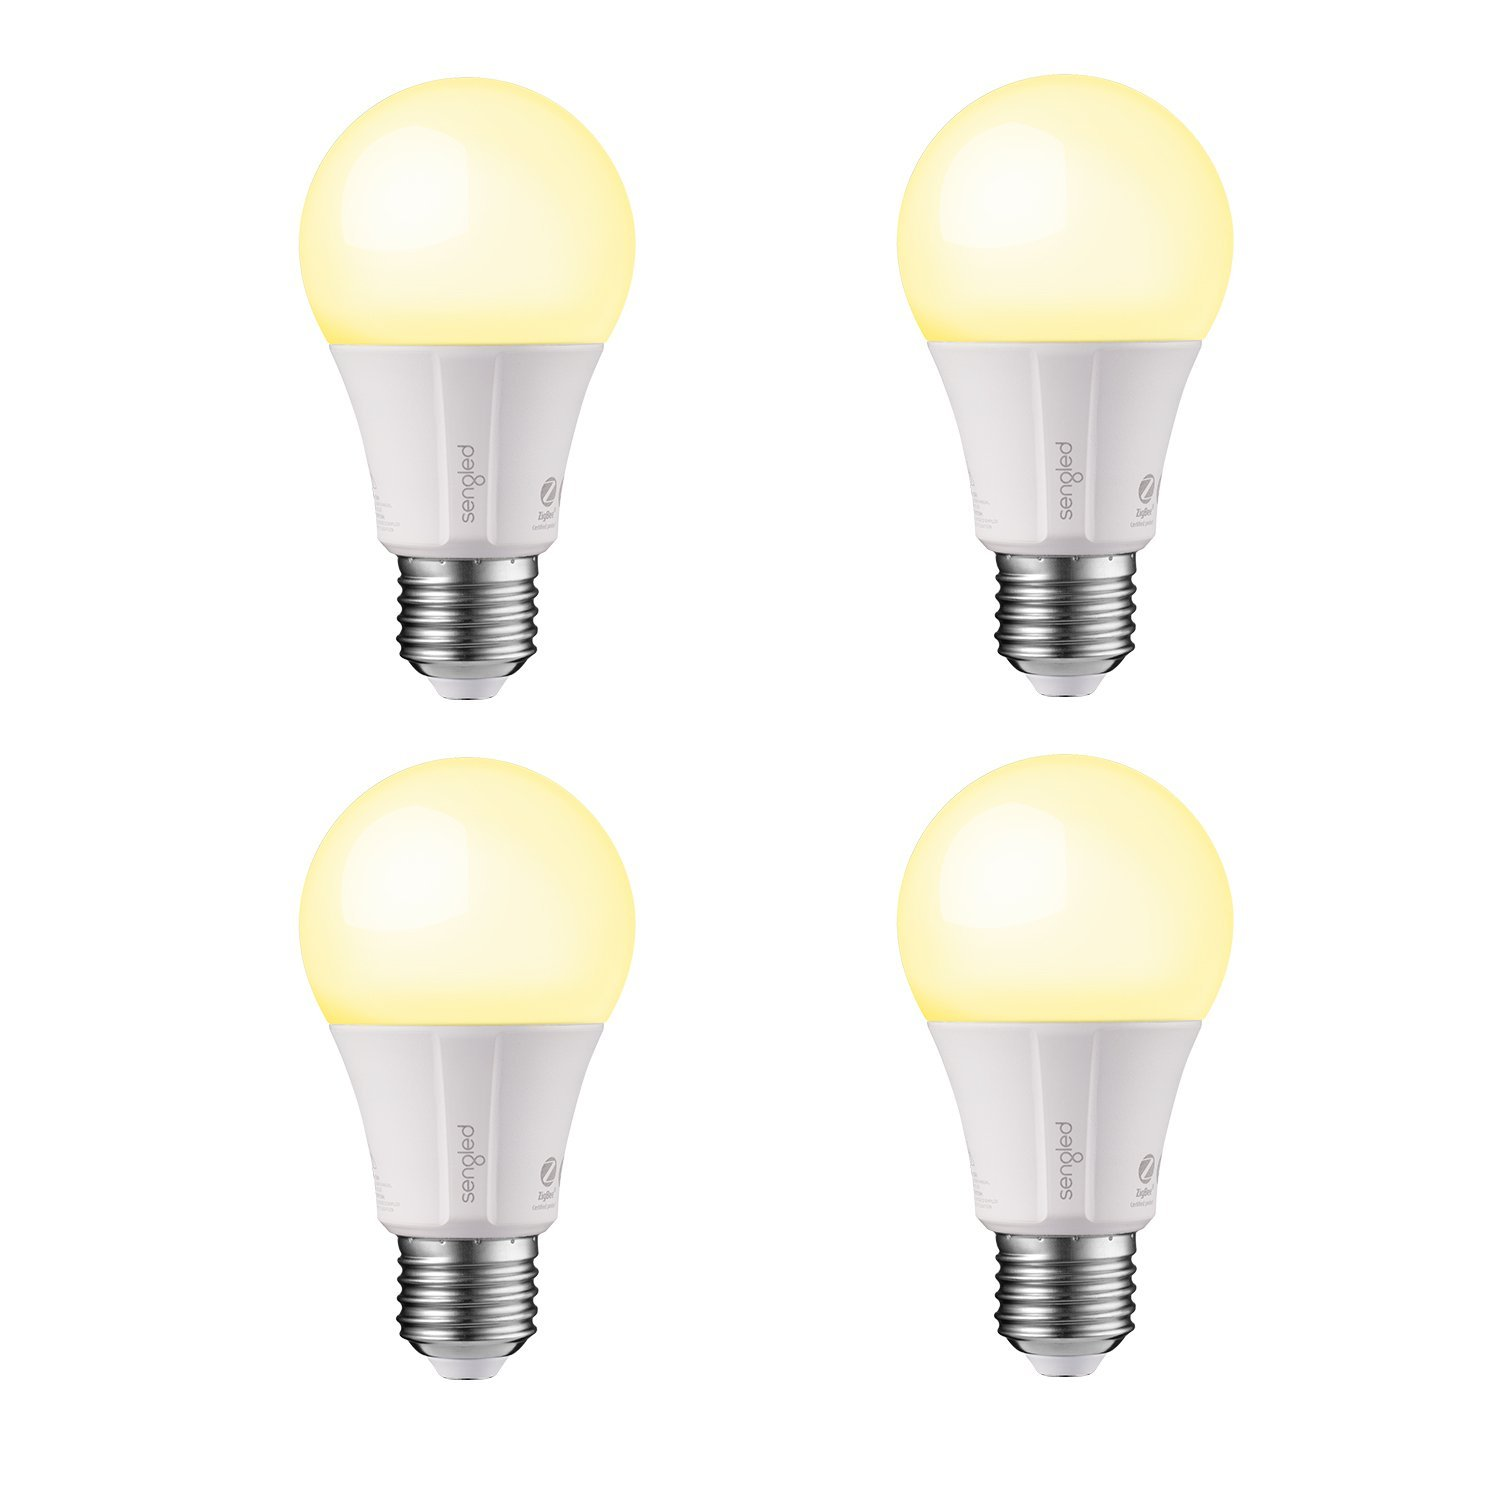 Sengled Element Classic A19 Smart Bulbs Dimmable Zigbee Bulbs